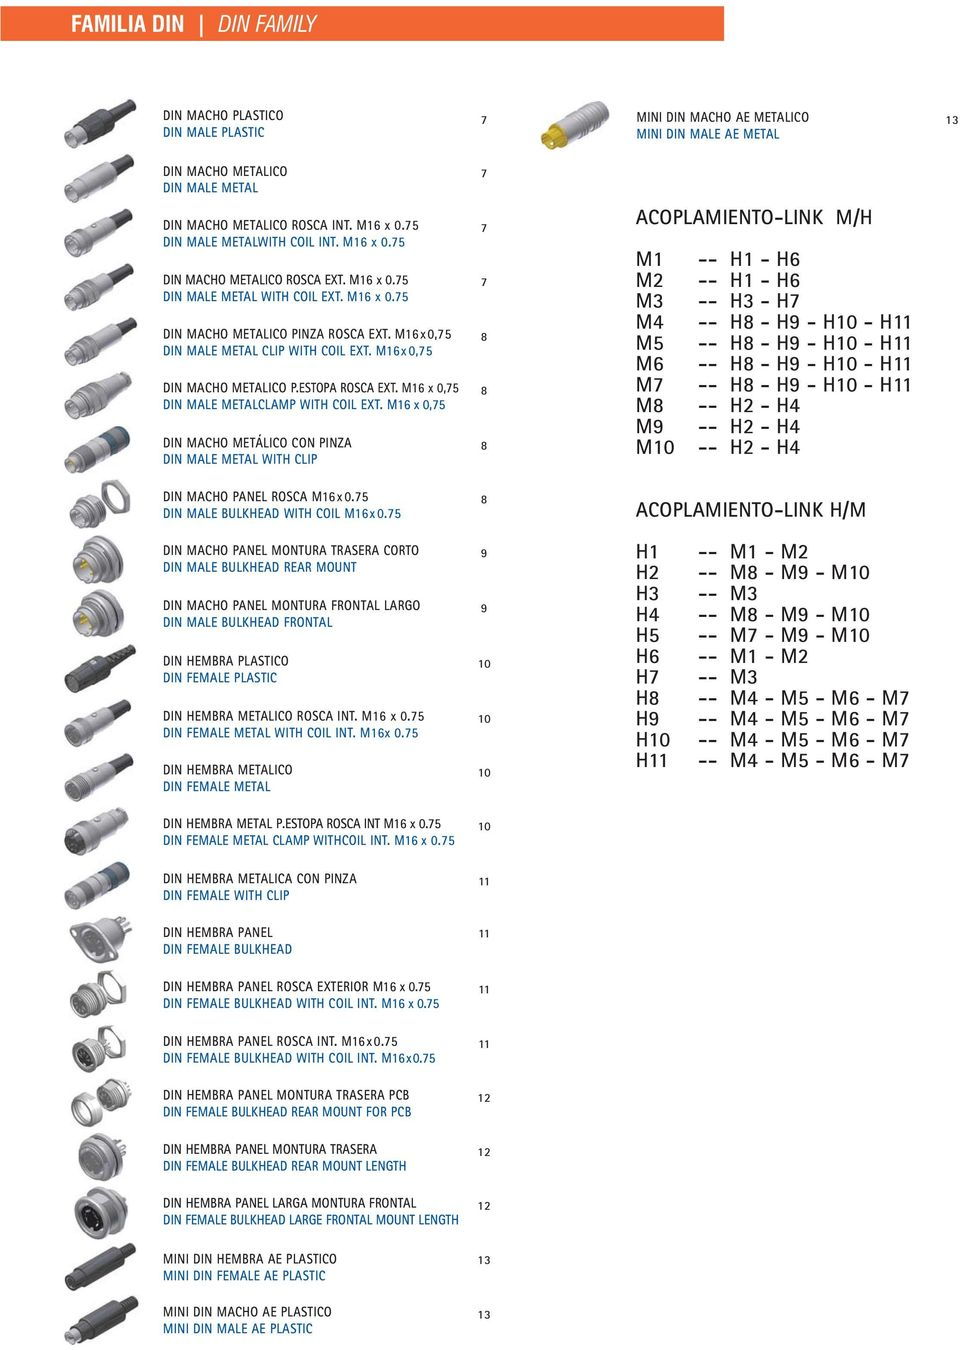 M16x0,75 DIN MALE METAL CLIP WITH COIL EXT. M16x0,75 DIN MACHO METALICO P.ESTOPA ROSCA EXT. M16 x 0,75 DIN MALE METALCLAMP WITH COIL EXT.